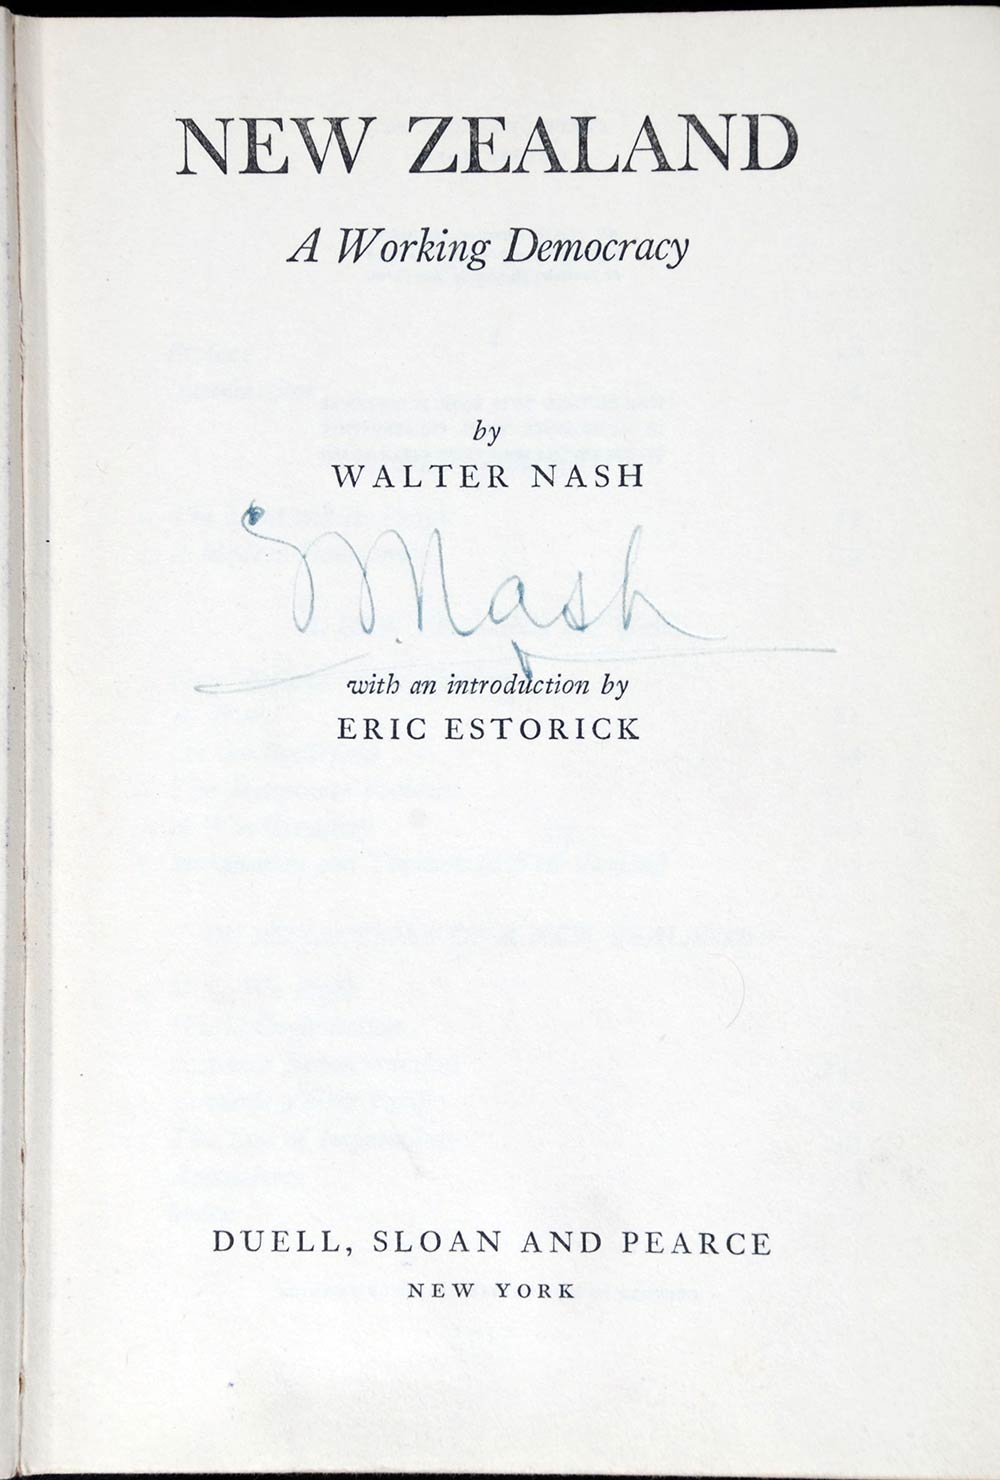 Walter Nash. <em>New Zealand: a working democracy</em>. New York: Duell, Sloan and Pearce, 1943.